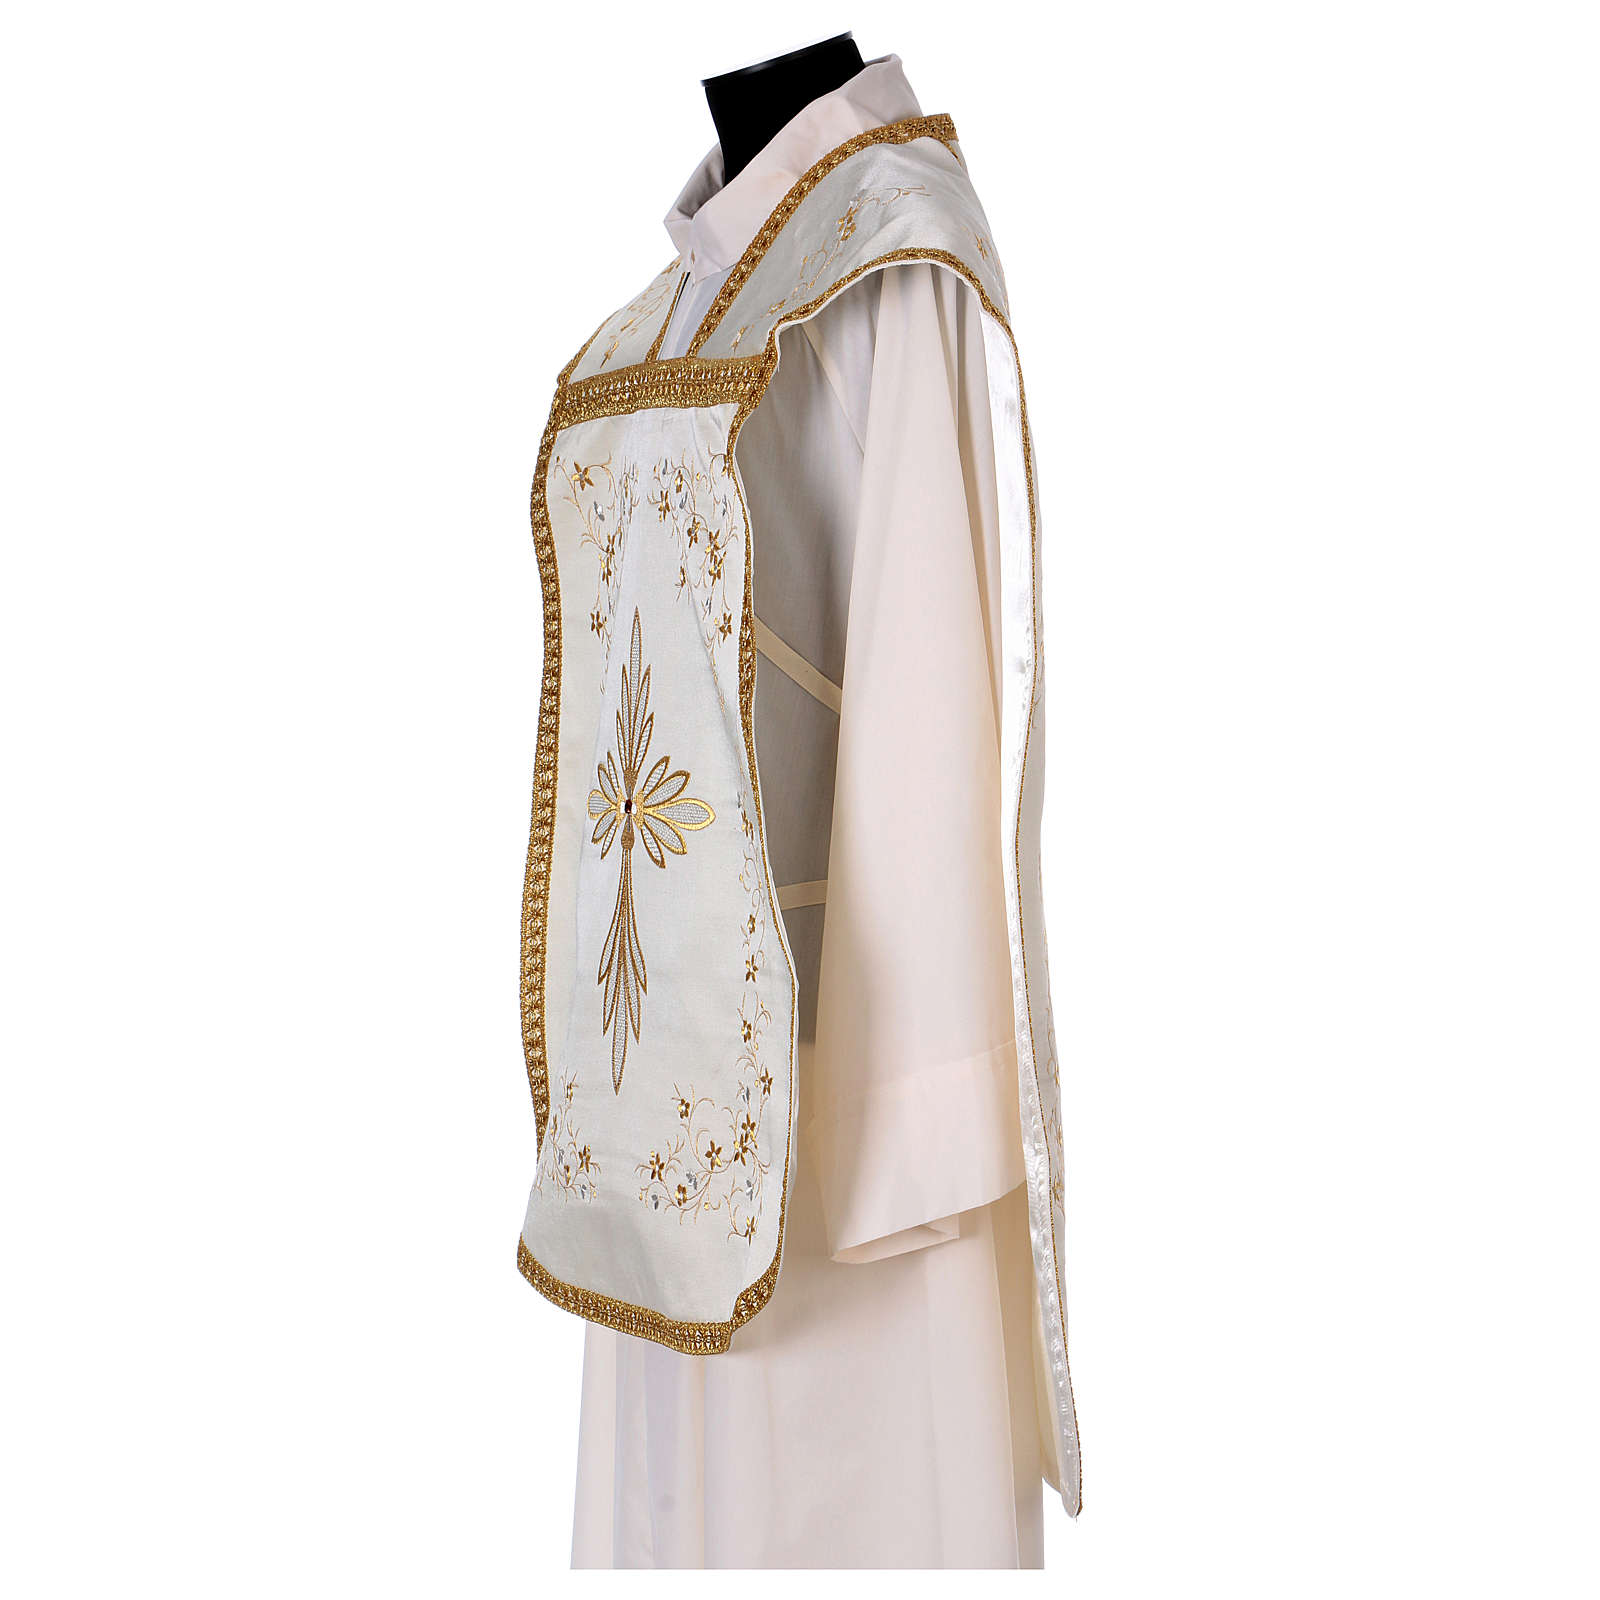 Embroidered roman chasuble 4